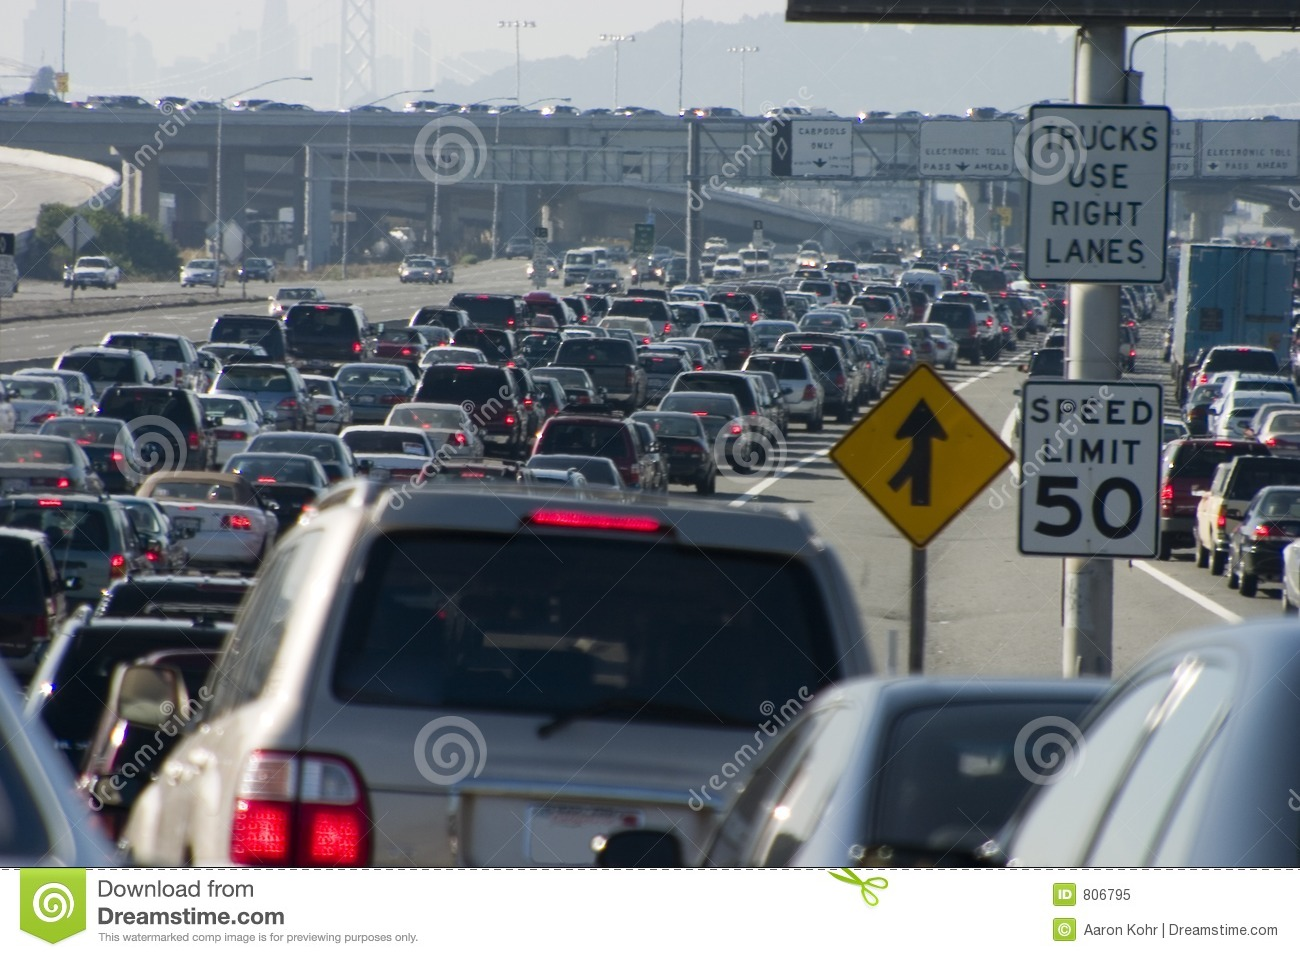 traffic jams are now a major The northwest region has been plagued with traffic jams for far on so many major highways all the 12 worst traffic jams in puget sound history.